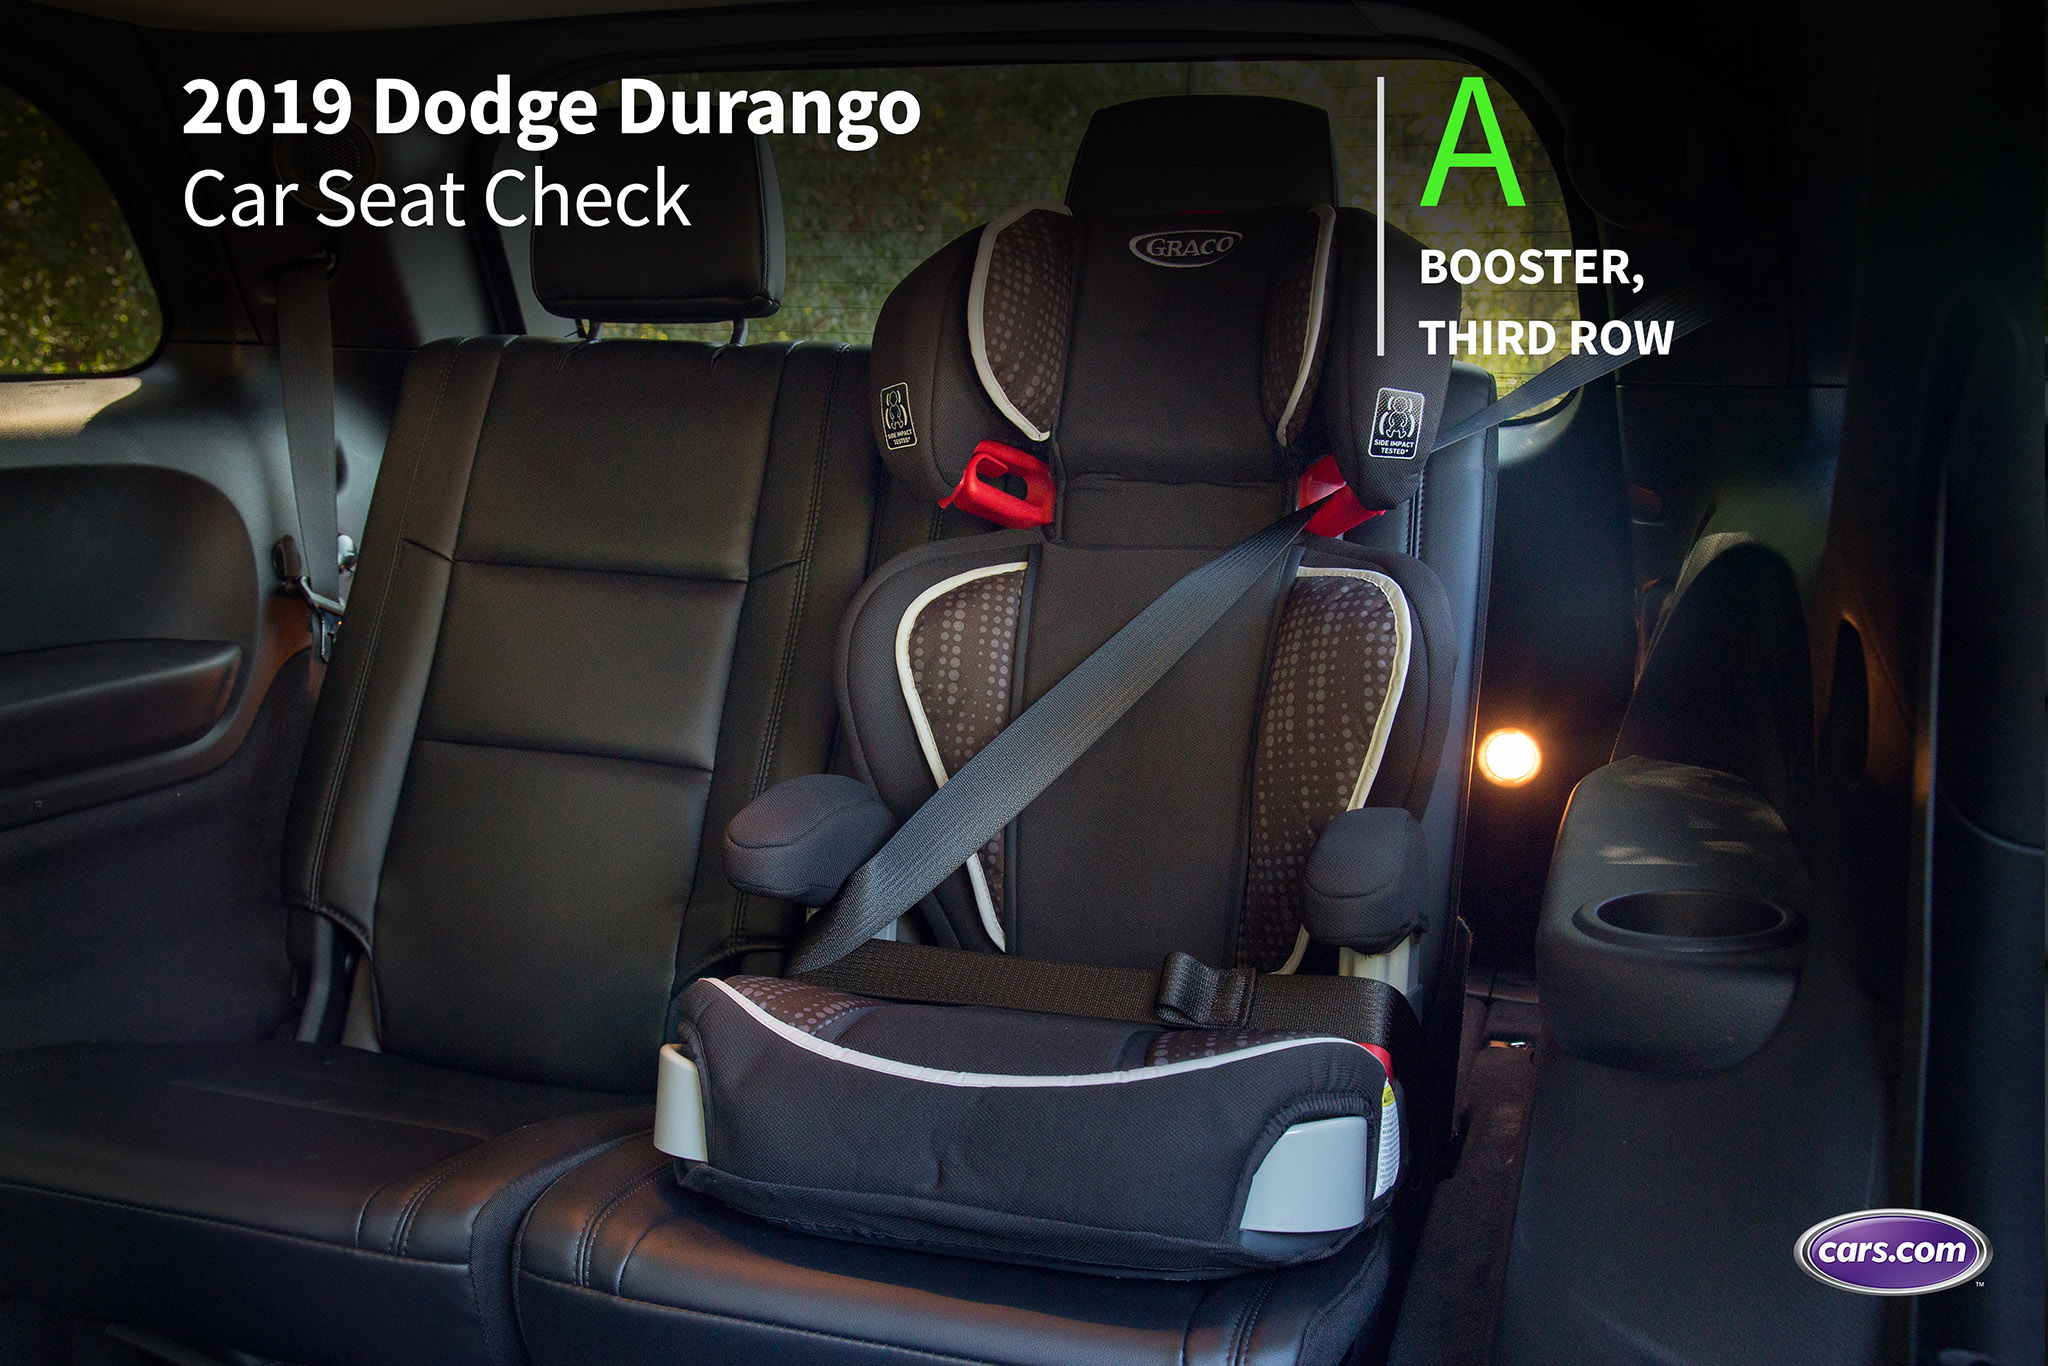 Fabulous How Do Car Seats Fit In A 2019 Dodge Durango News Cars Com Frankydiablos Diy Chair Ideas Frankydiabloscom